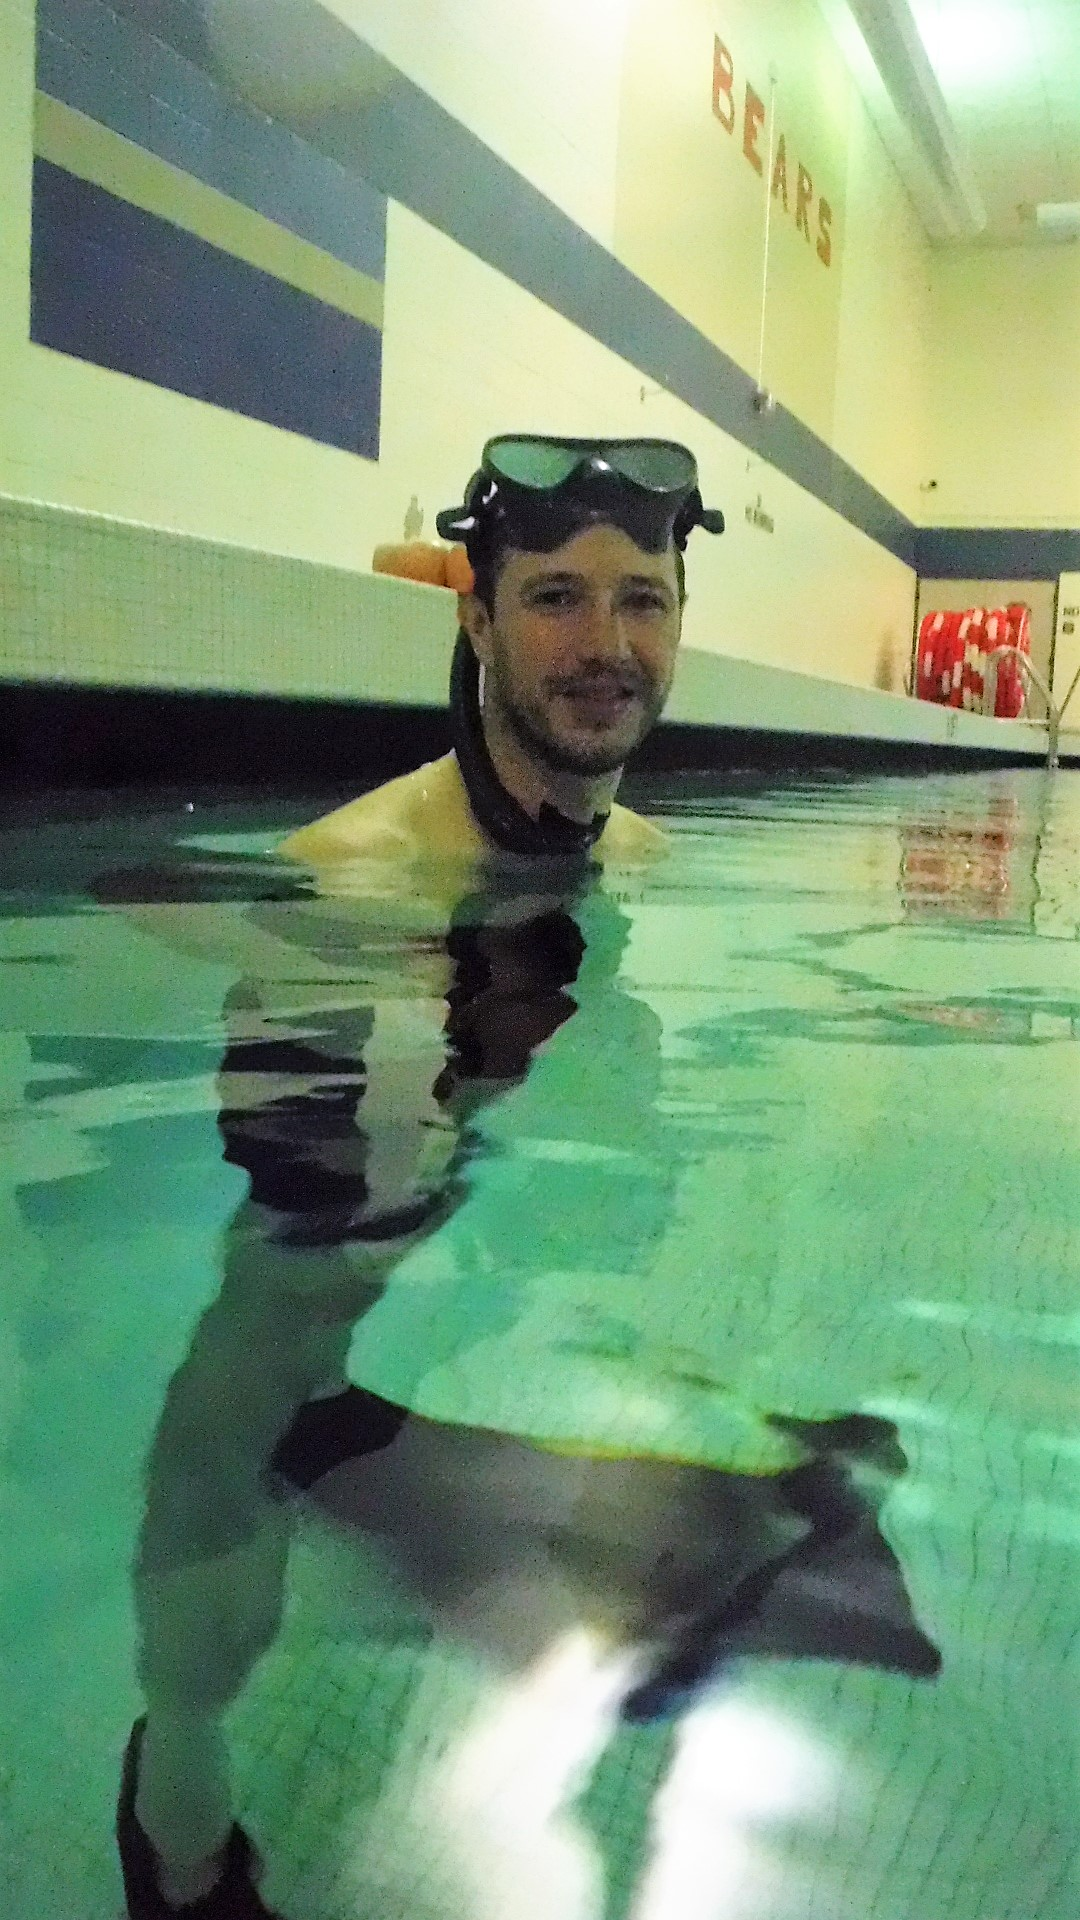 Underwater hockey player at Oliver HS pool.